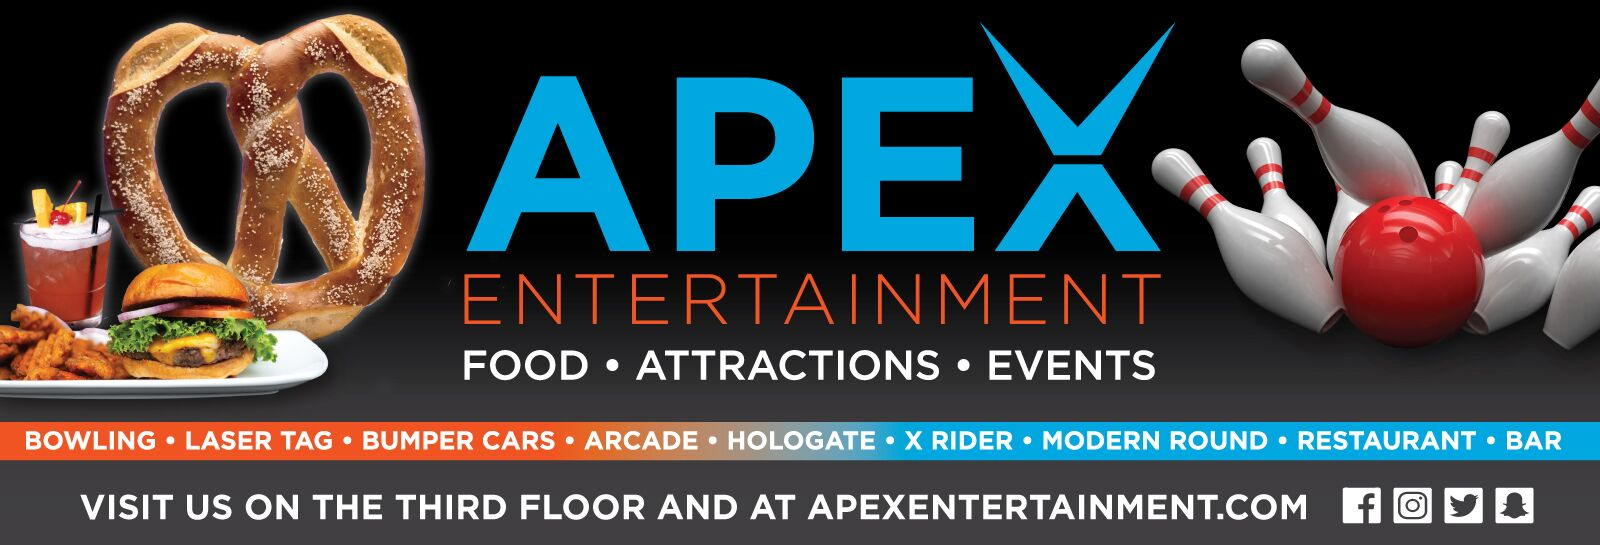 Apex Entertainment Slider